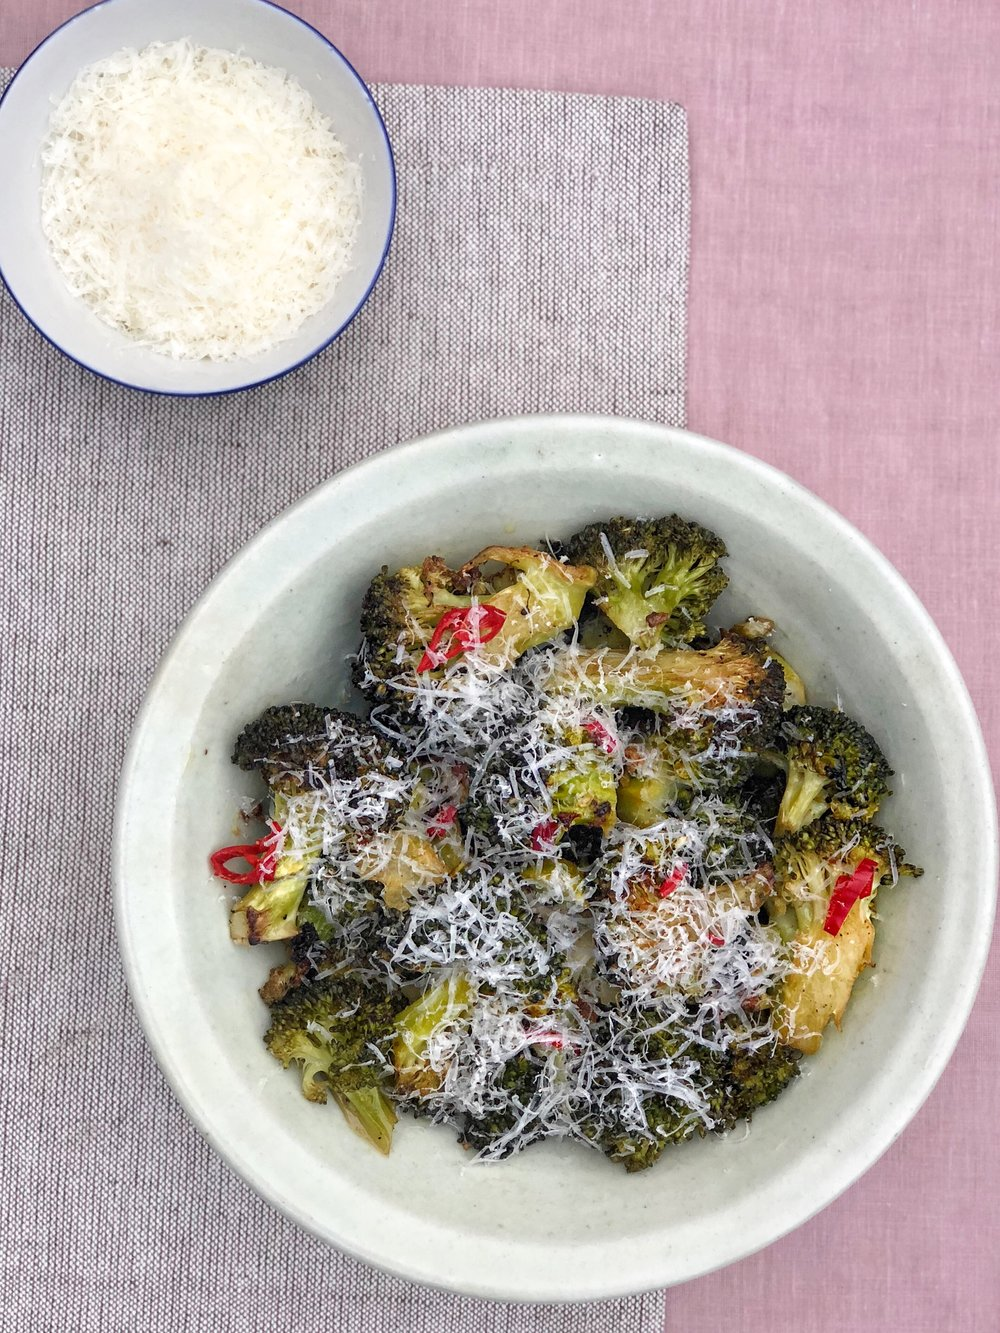 ROASTED BROCCOLI WITH CHILLI, GARLIC AND PARMESAN INSPIRED BY DONNA HAY